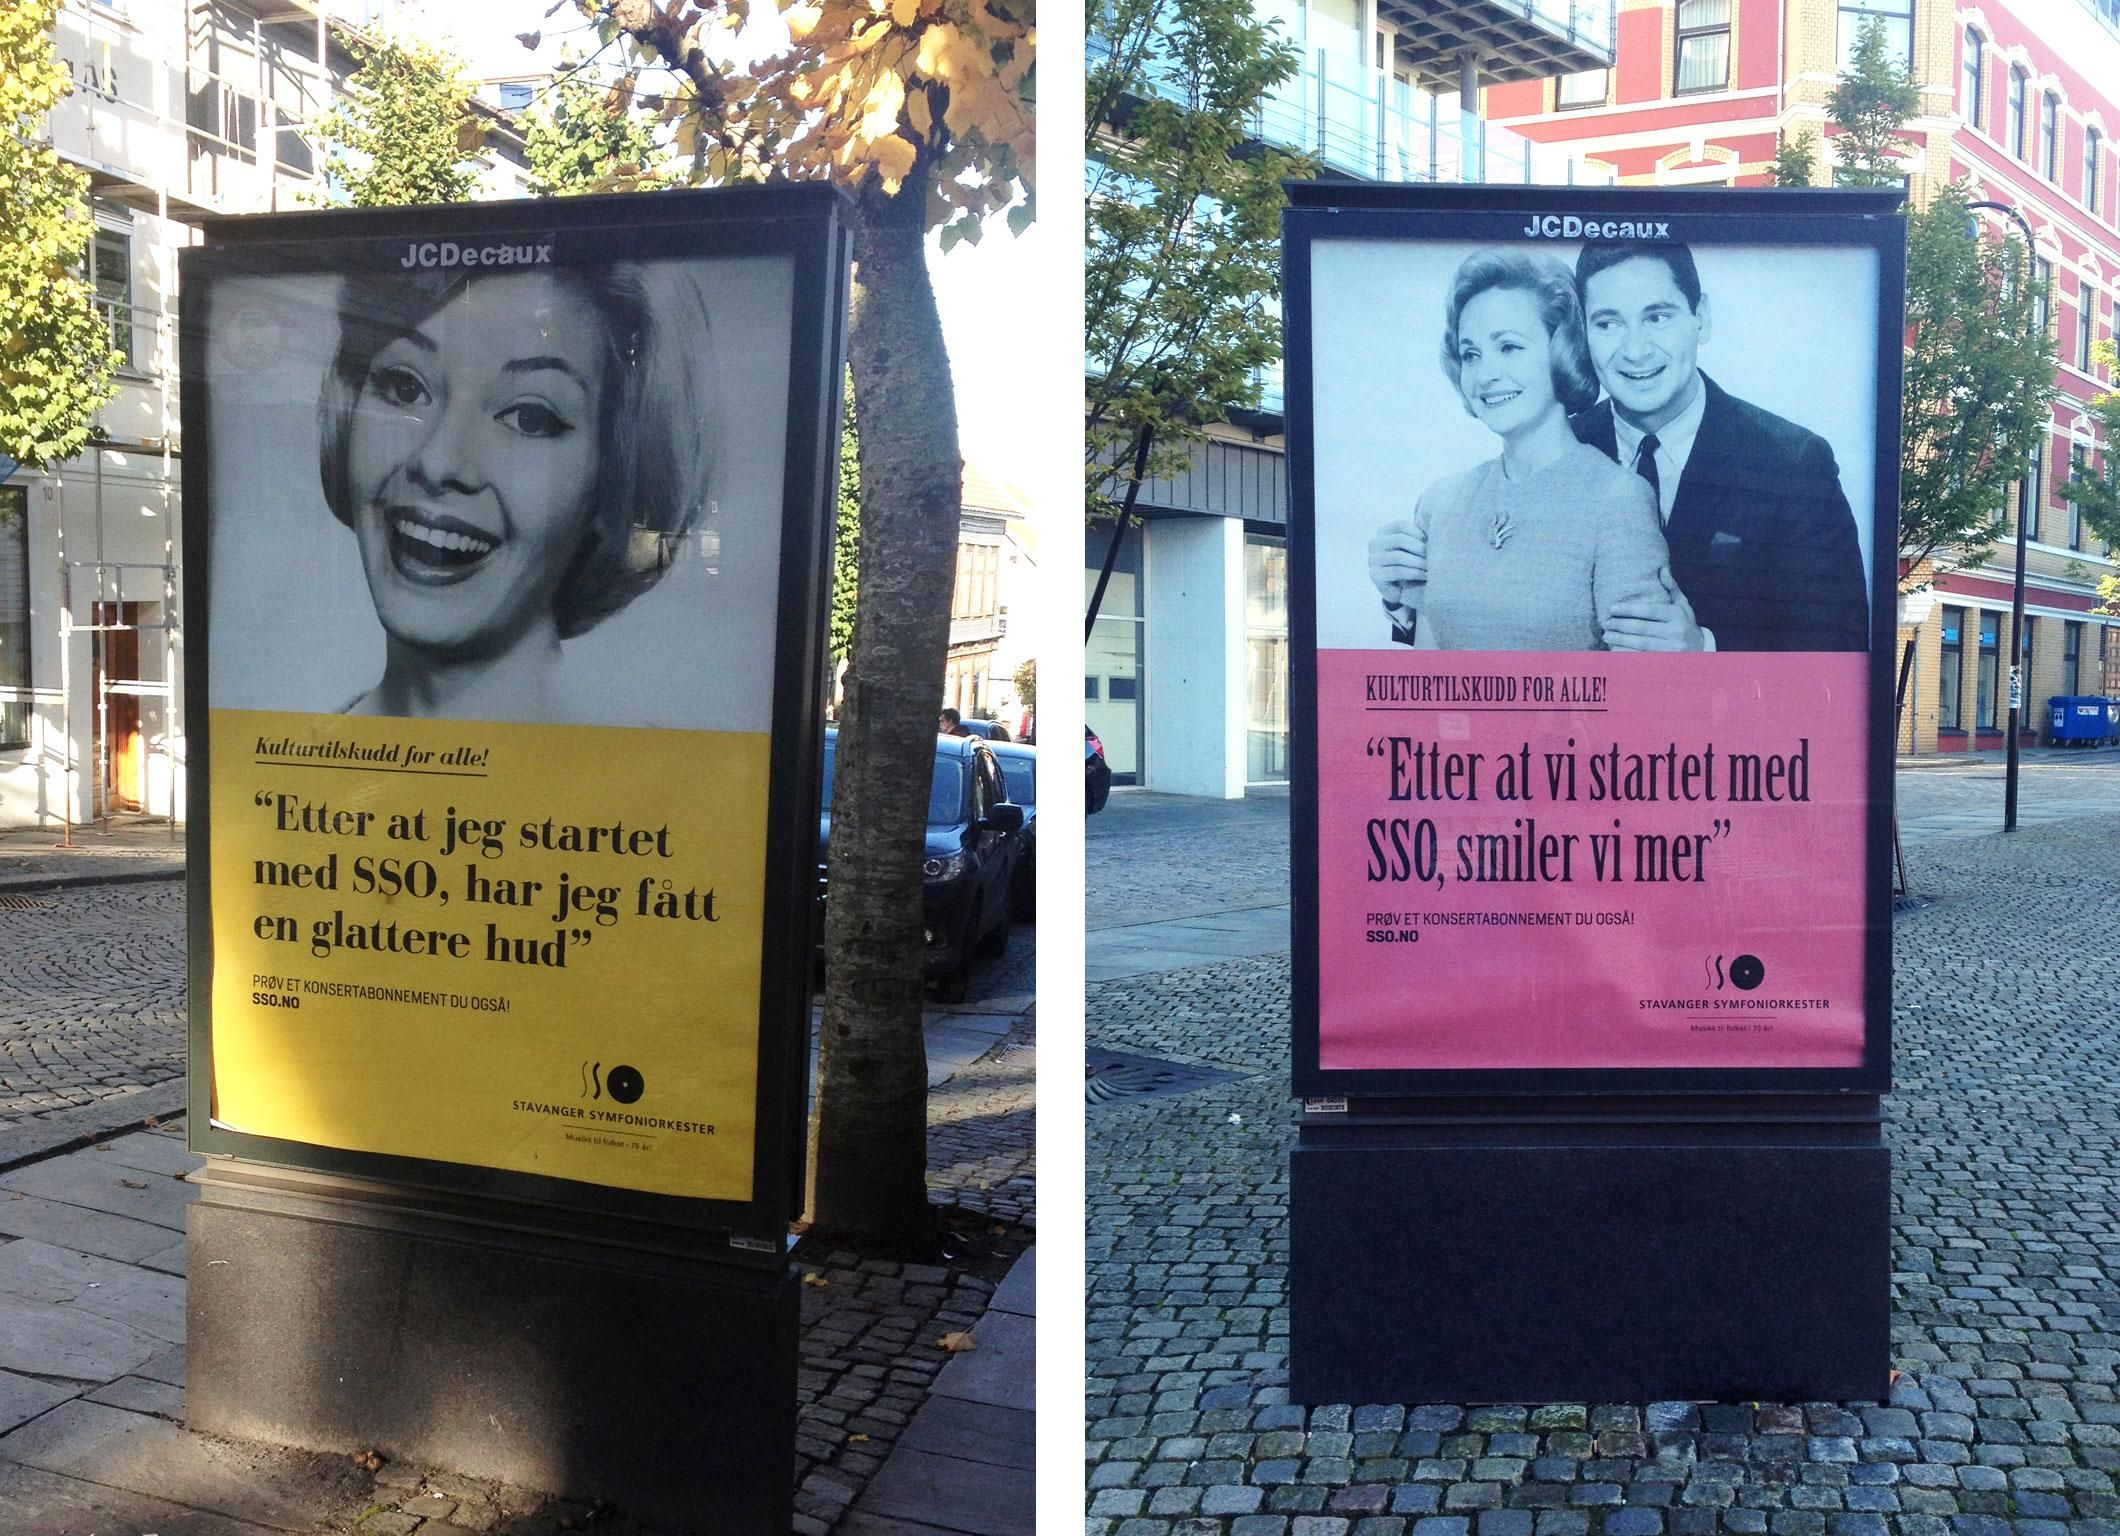 Stavanger Symfoniorkester Poster and Billboard Campaign | #melvaeroglien - See more of our #design work at → m-l.no